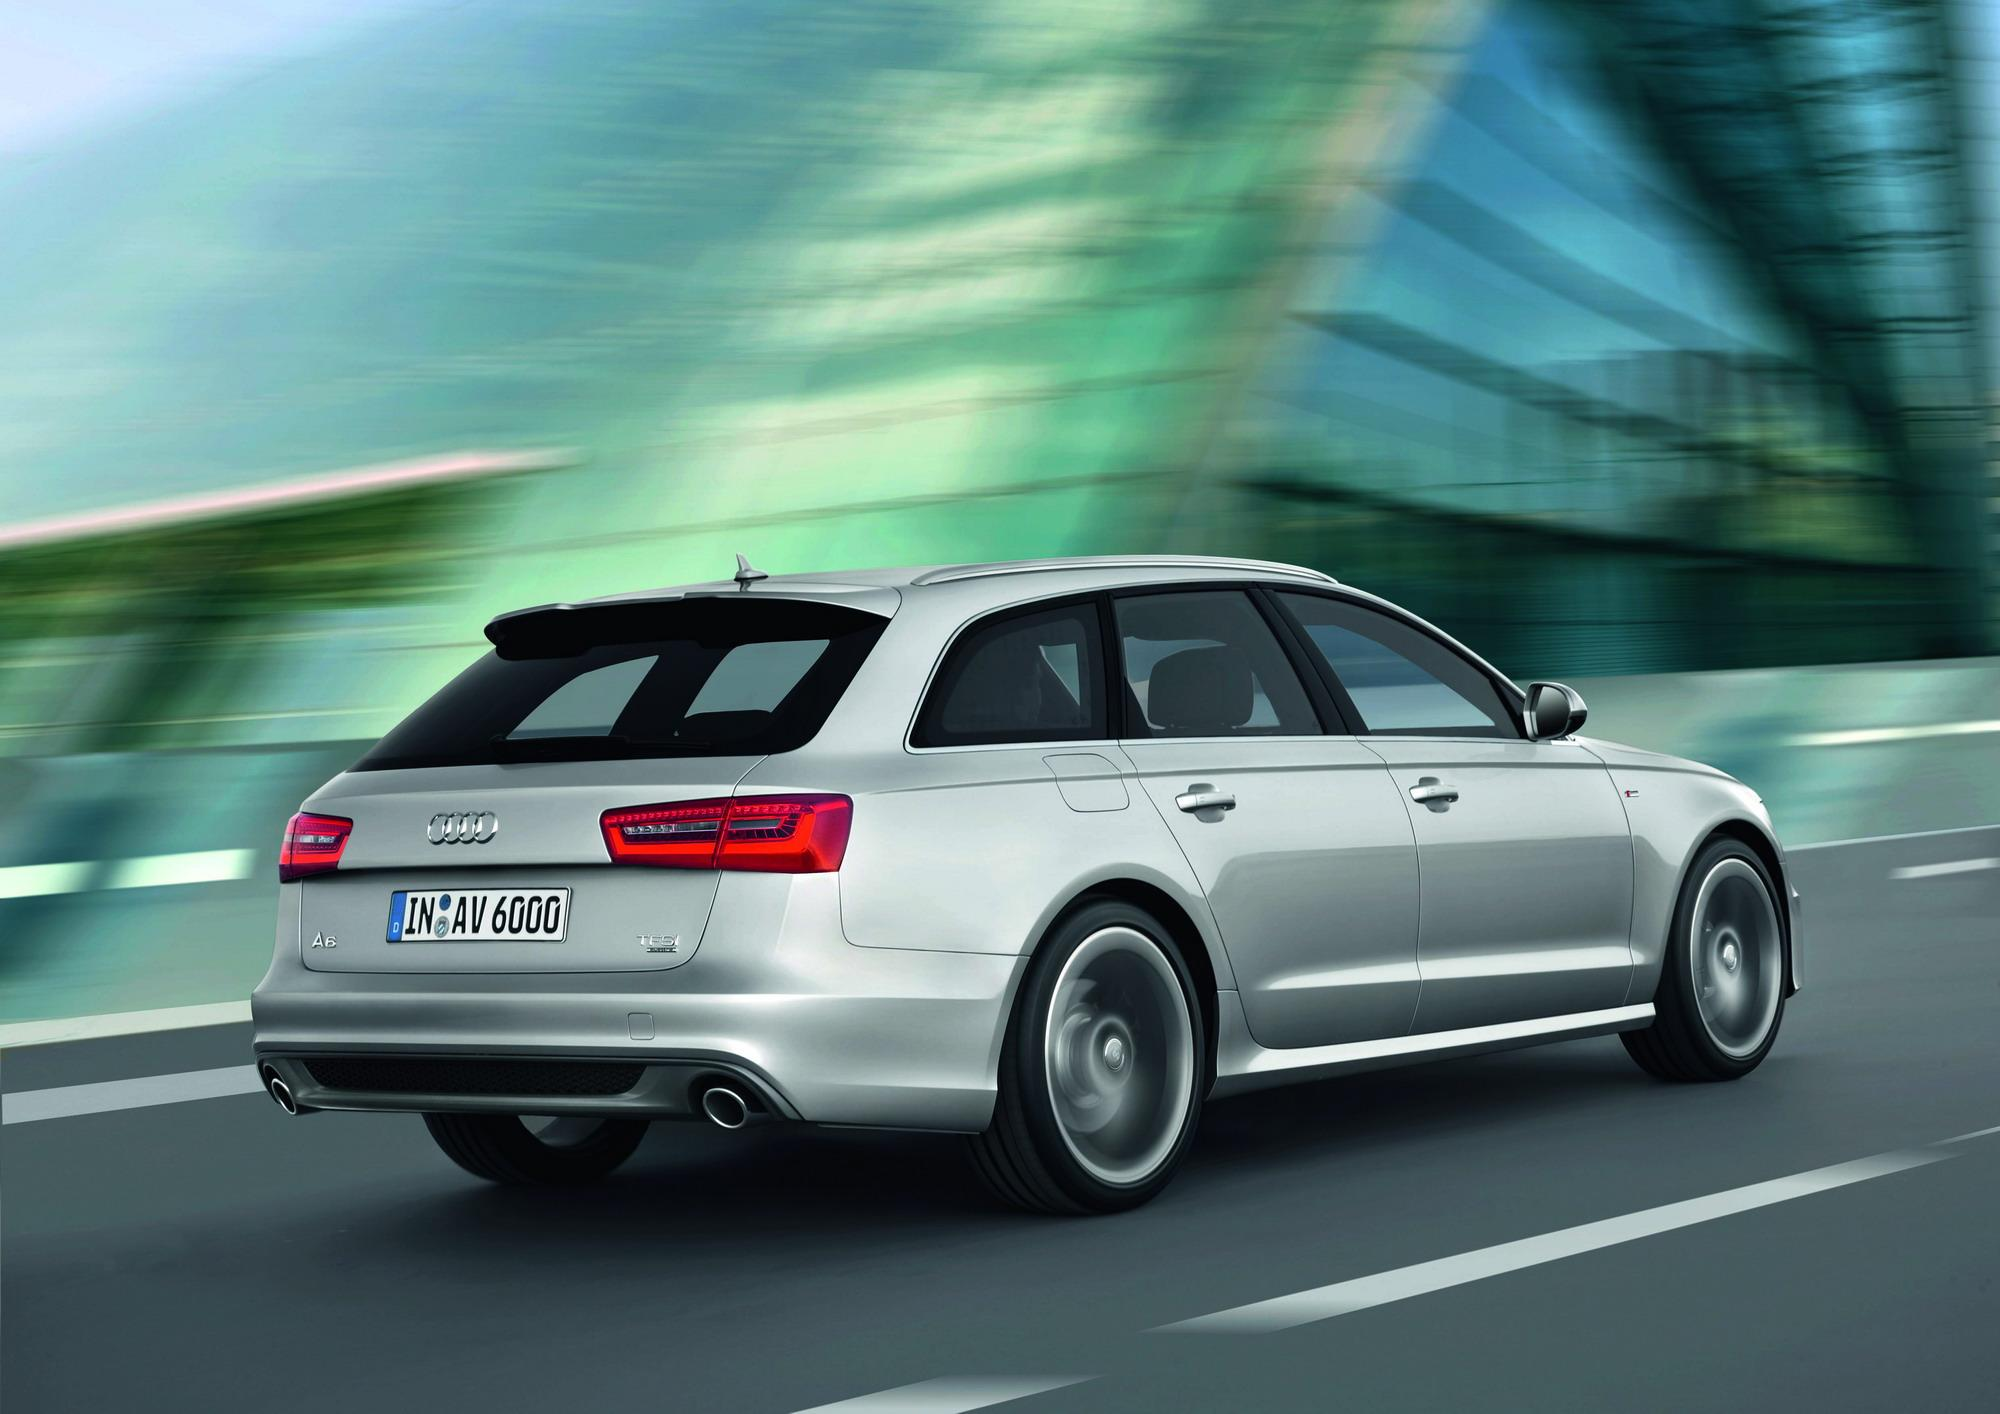 2012 Audi A6 Avant Top Speed All Lights Meaning